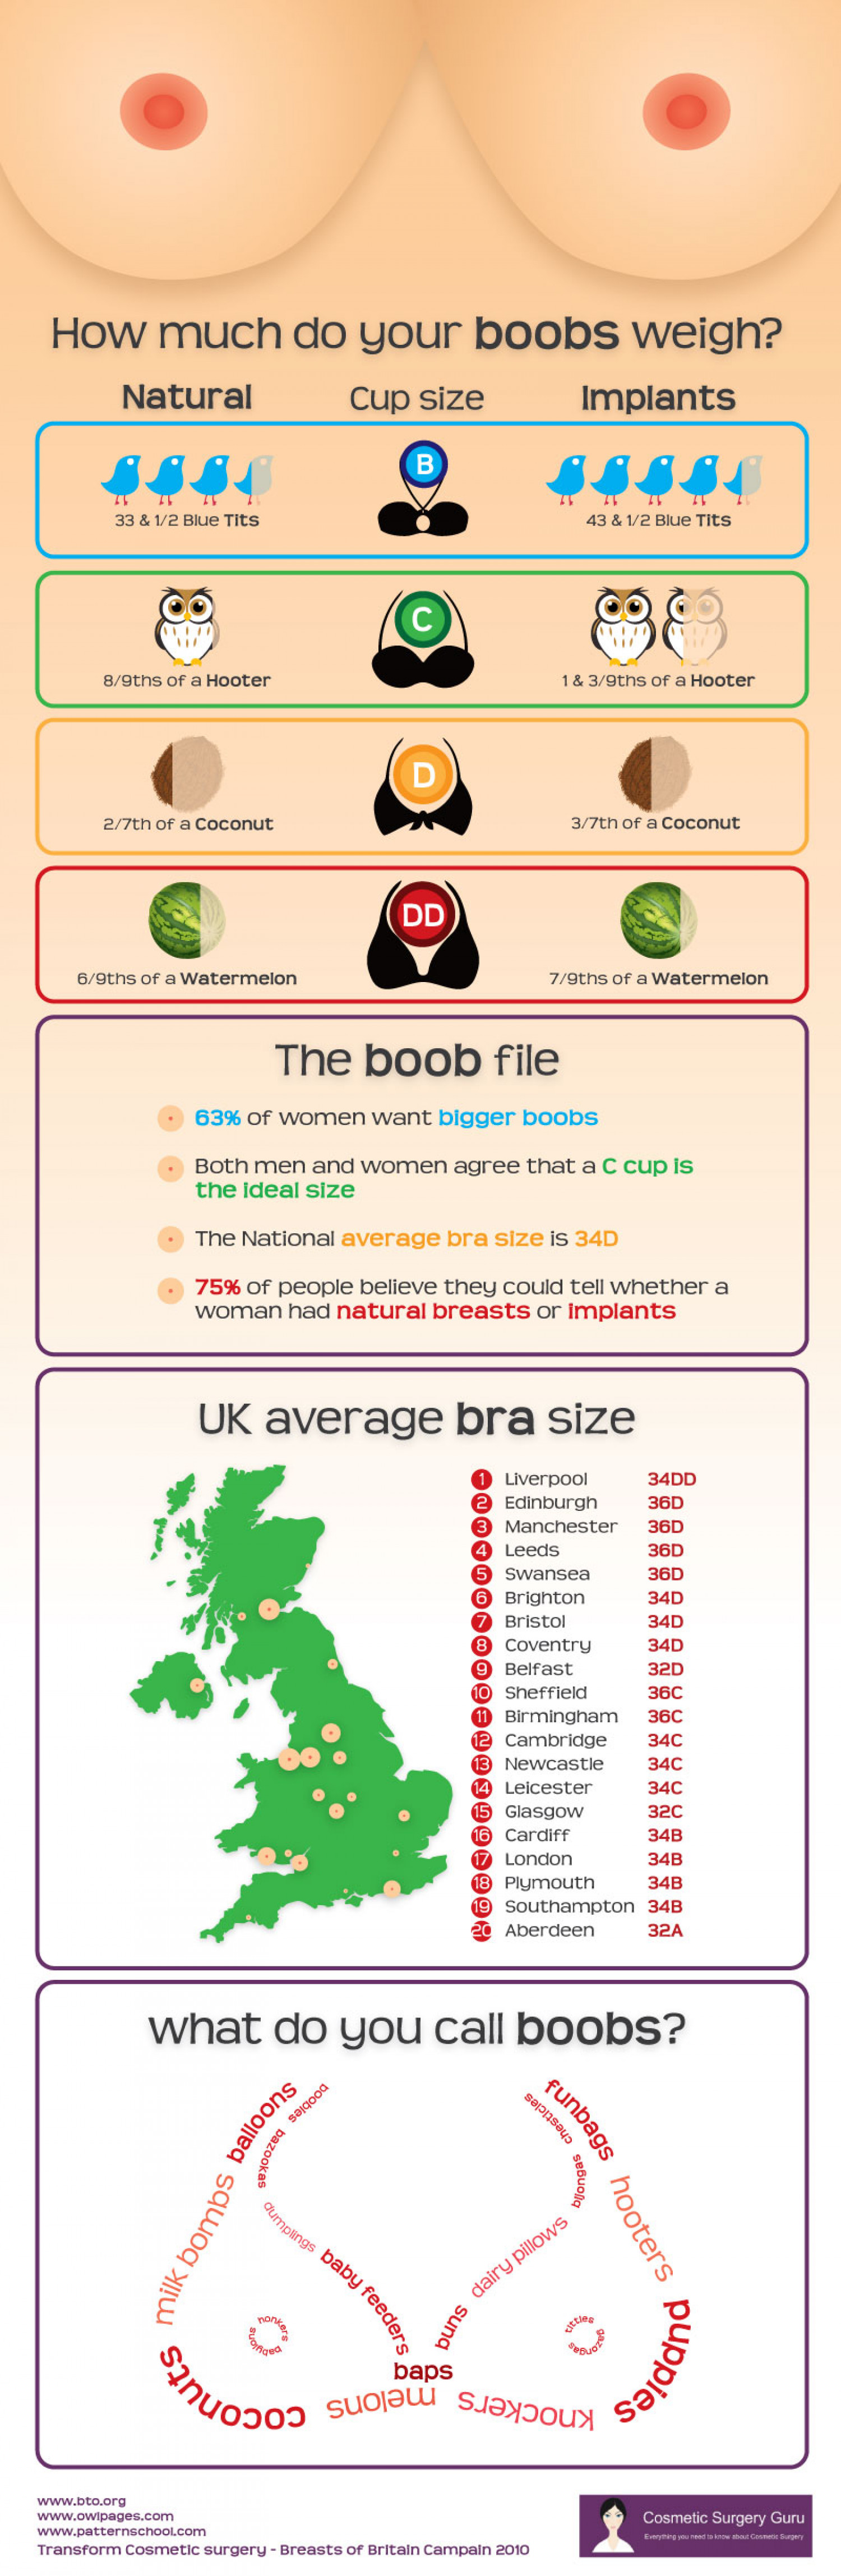 How much do your boobs weigh? Infographic